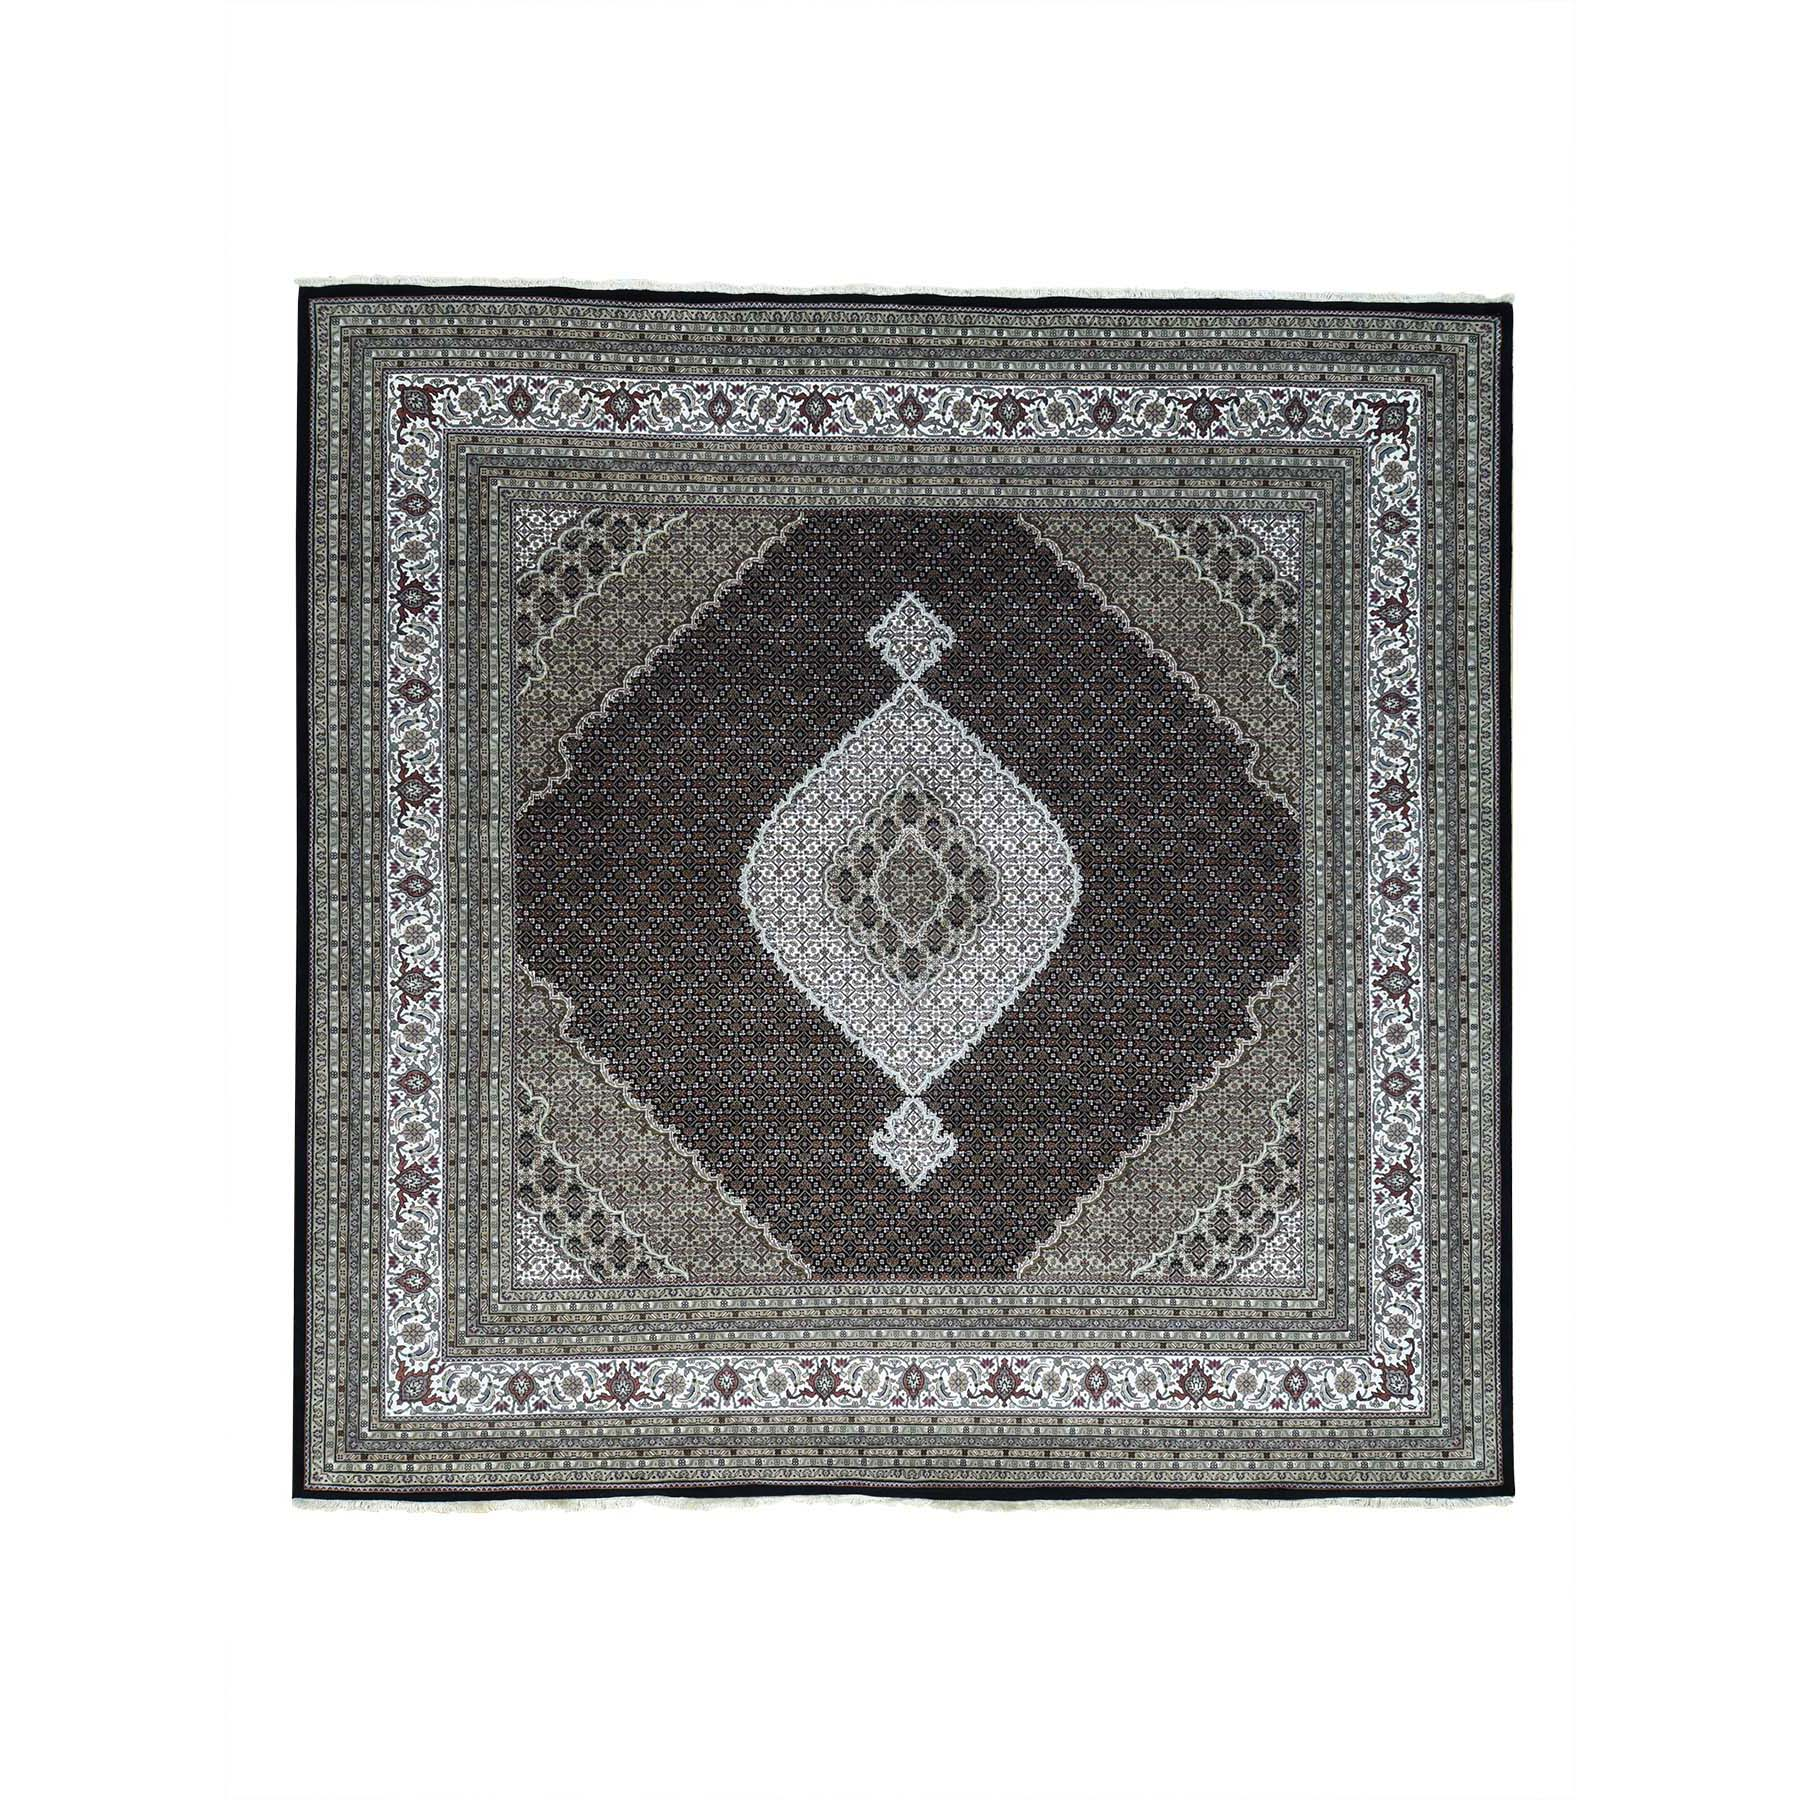 Pirniakan Collection Hand Knotted Black Rug No: 0161954